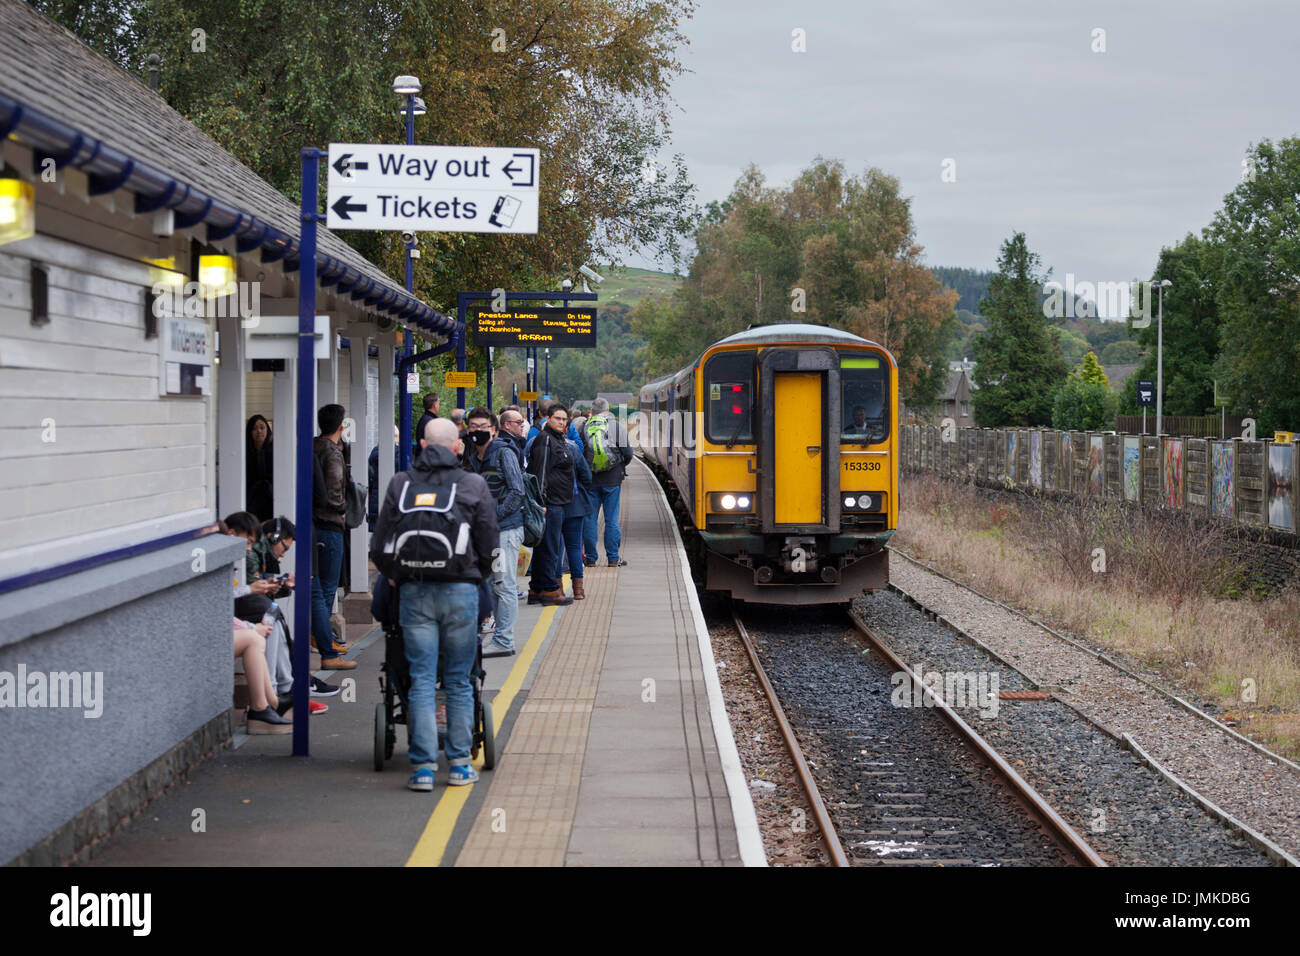 The 1634 Oxenholme - Windermere Northern Rail sprinter train arrives at  Windermere